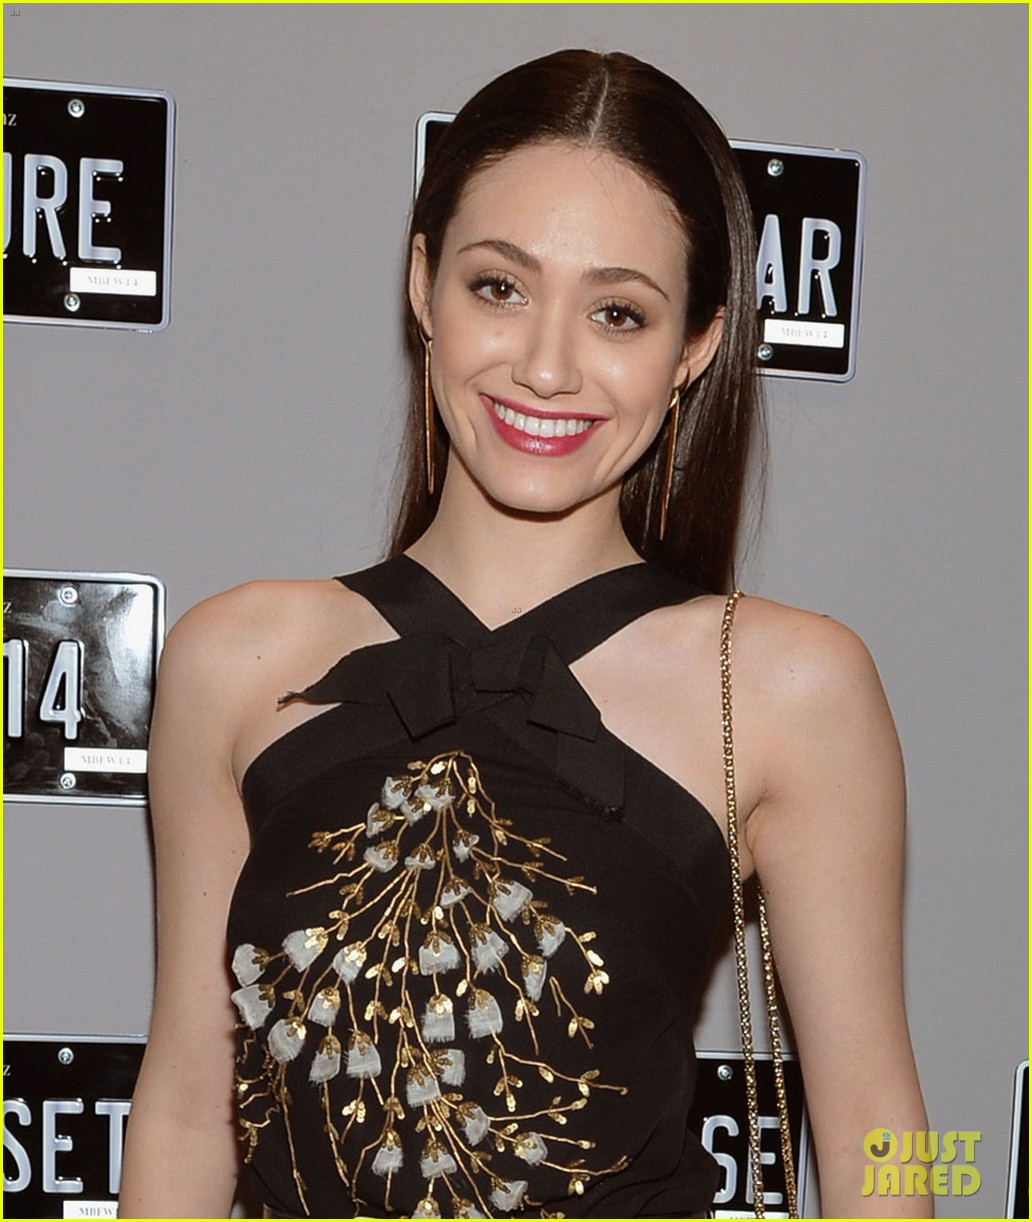 emmy rossum carolina herrera yigal azrouel nyfw shows 063050660